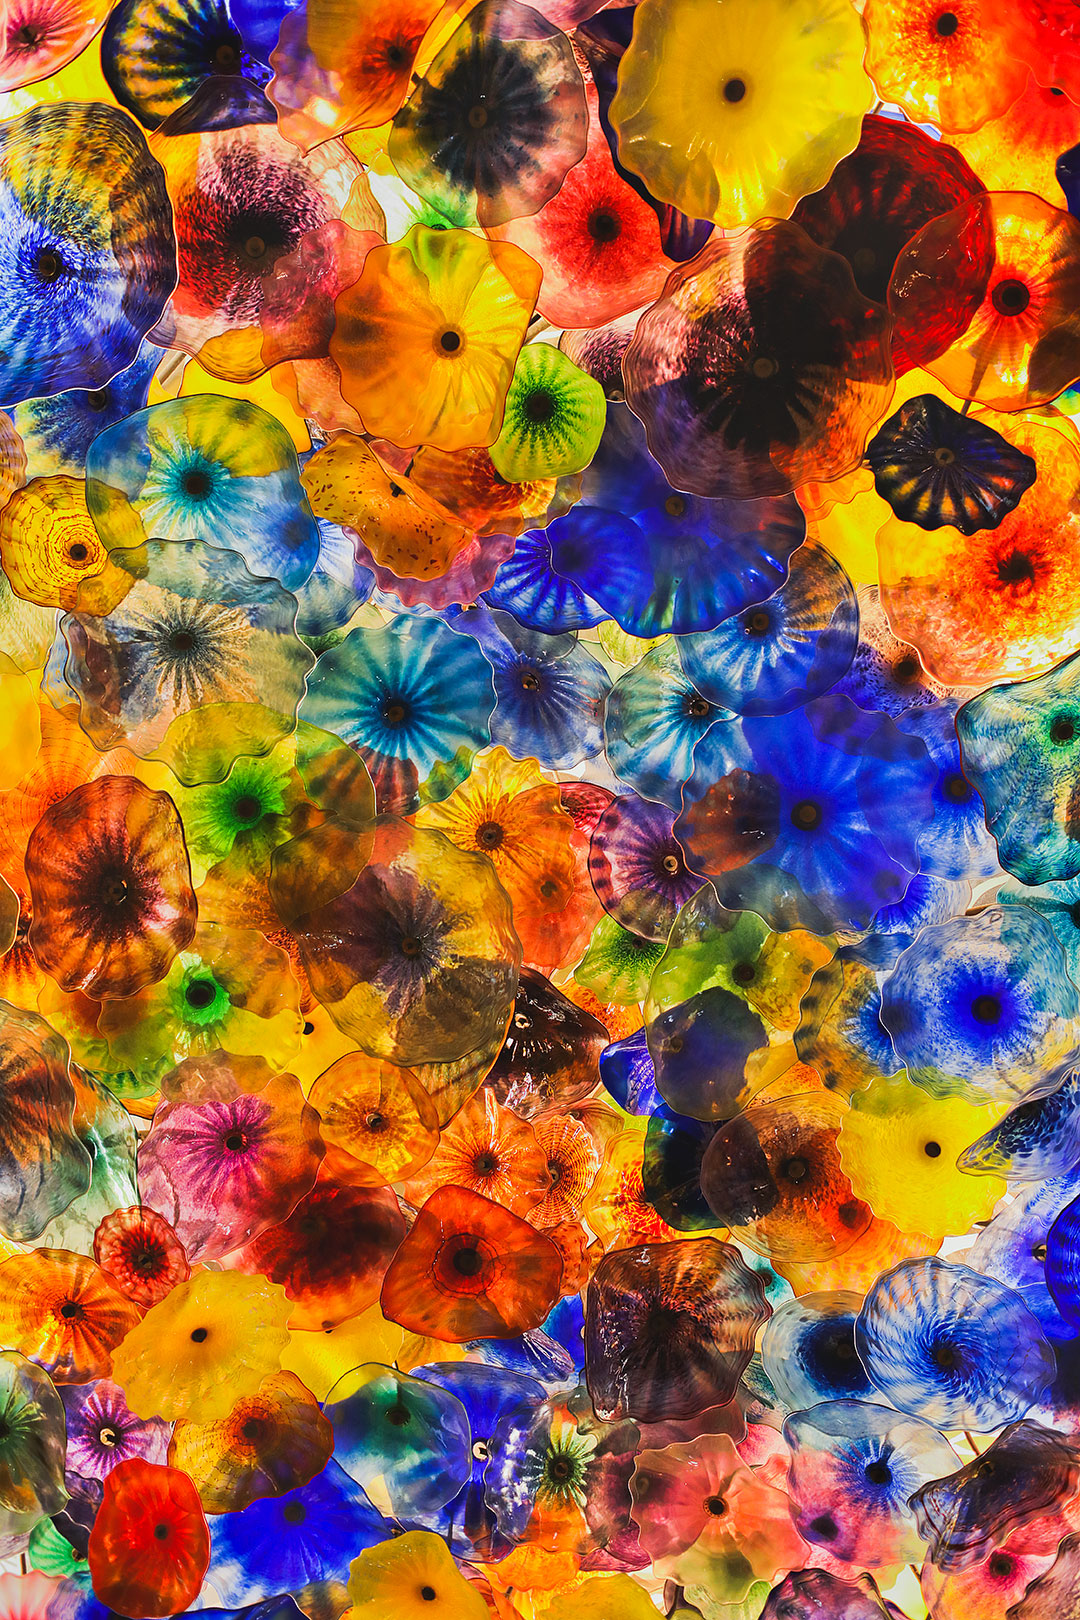 Chihuly Bellagio Art + 101 Things to Do in Nevada